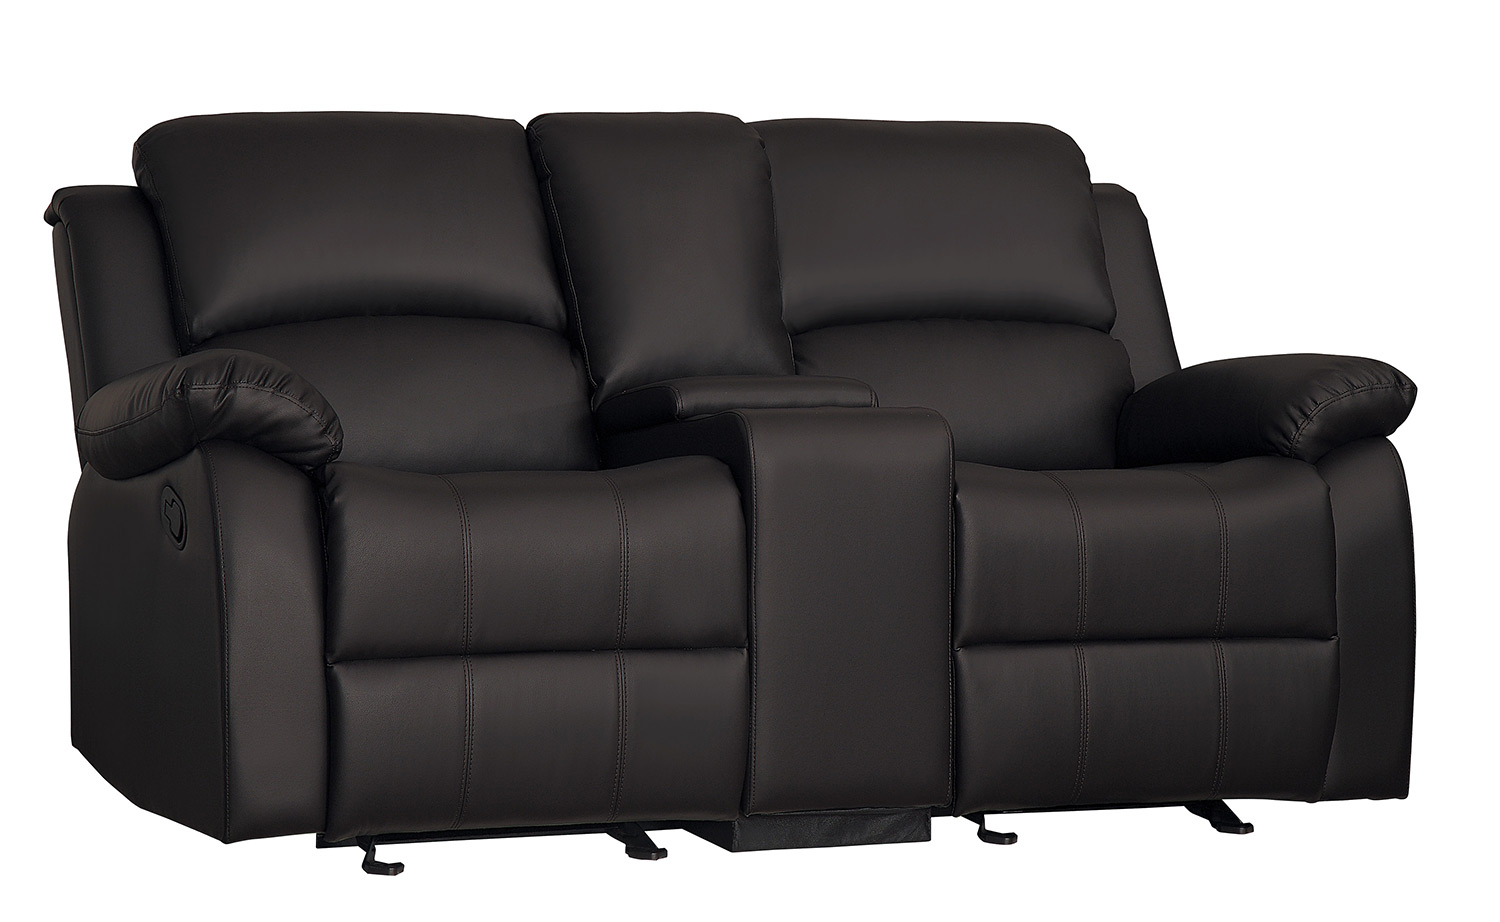 Homelegance Clarkdale Double Glider Reclining Love Seat With Center Console - Dark Brown - Dark brown bi-cast vinyl